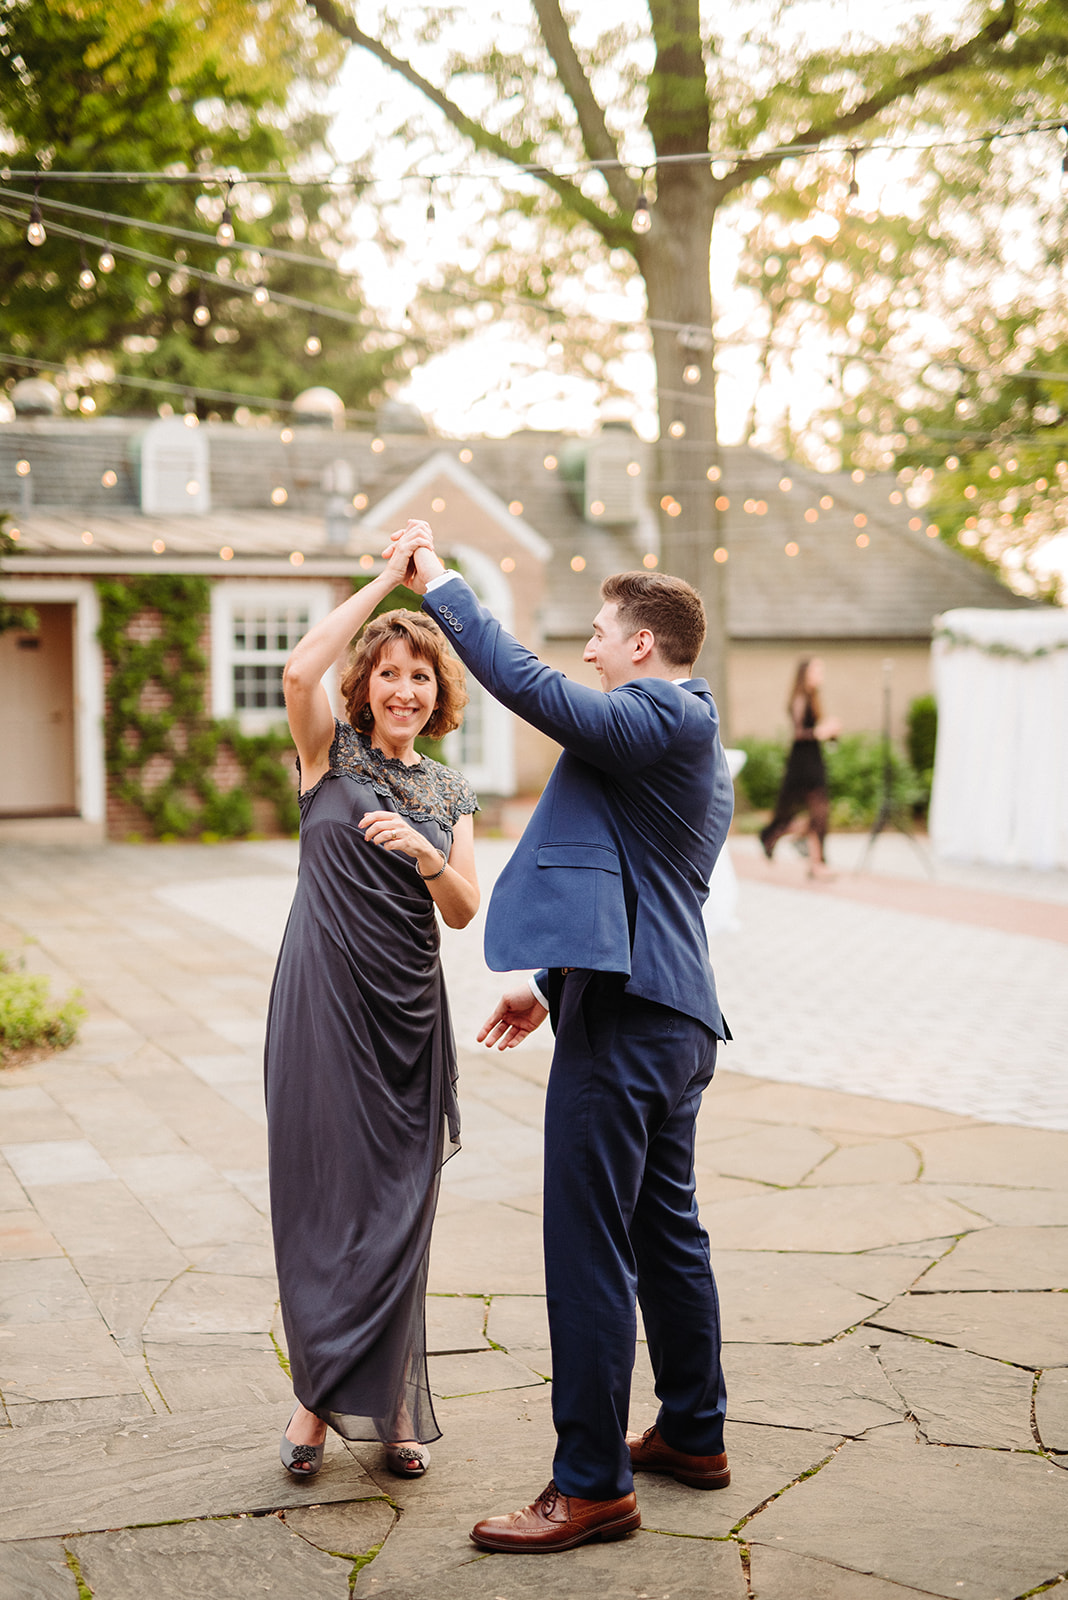 Groom gives his mother a twirl during their dance at their Drumore Estate wedding reception.